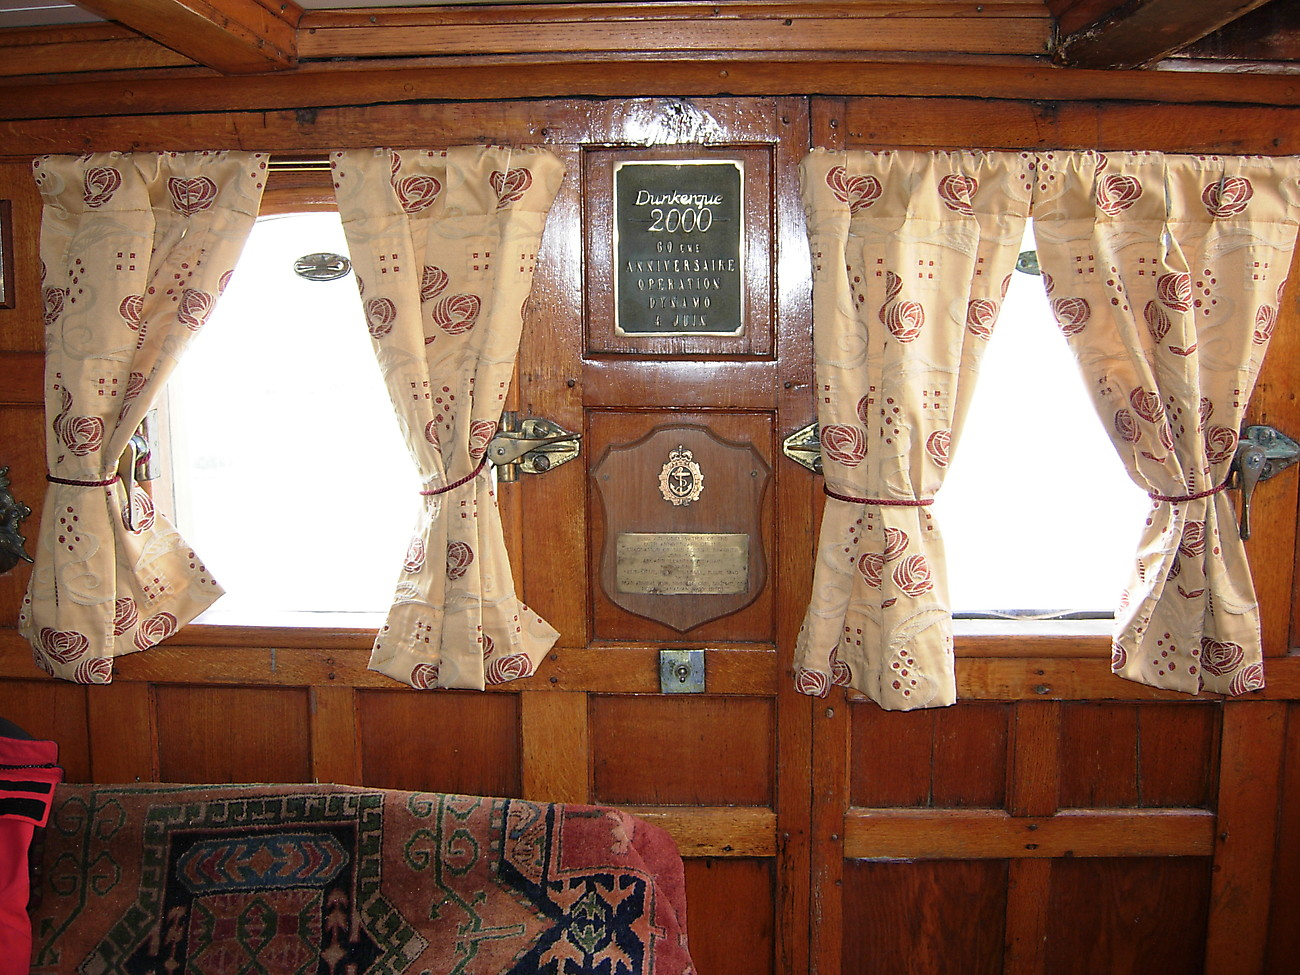 Plaques in main saloon.